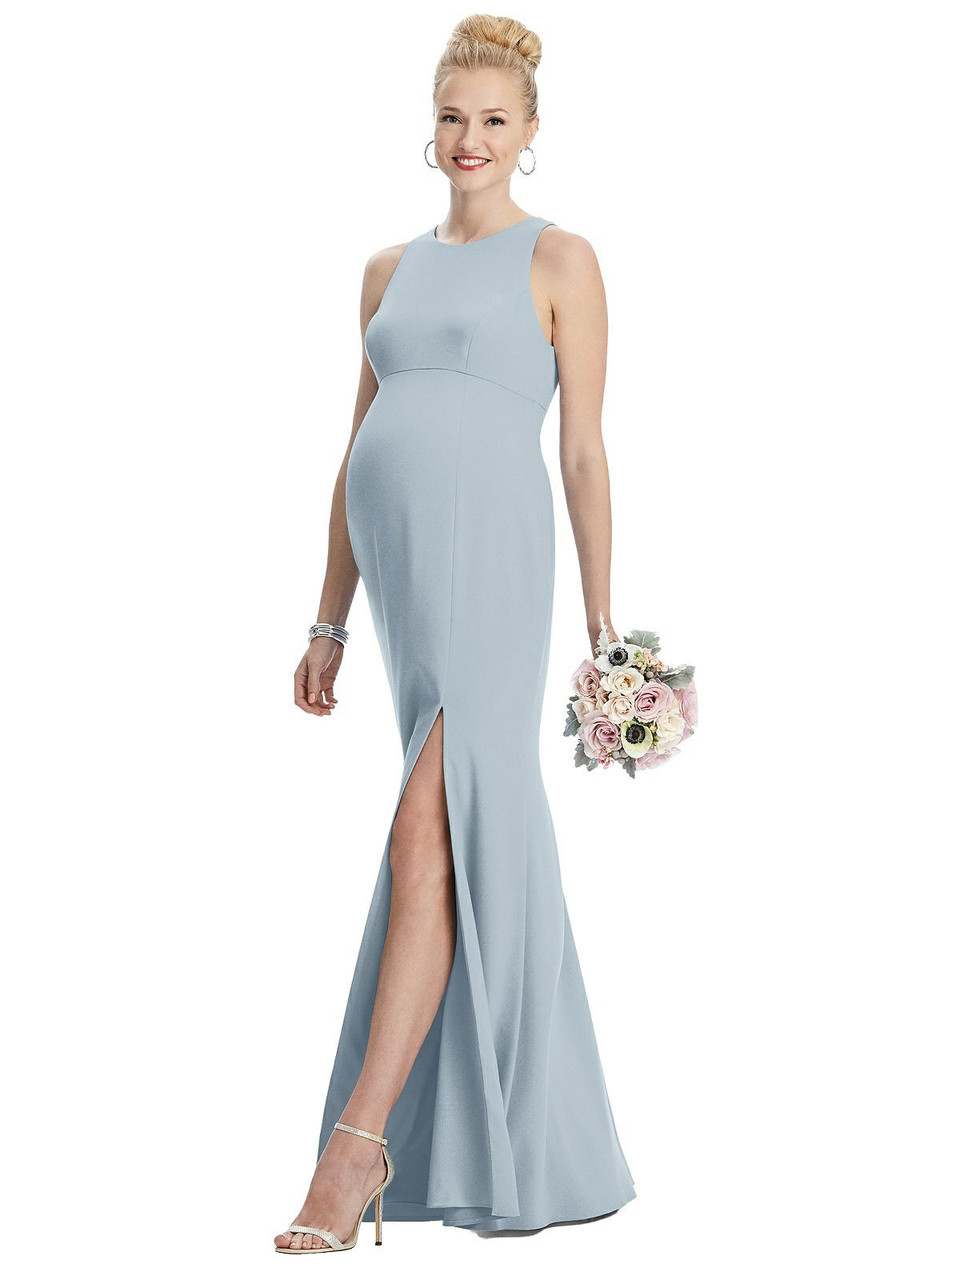 Maternity Style M441  |  Crepe - Sleeveless Halter Maternity Dress with Front Slit